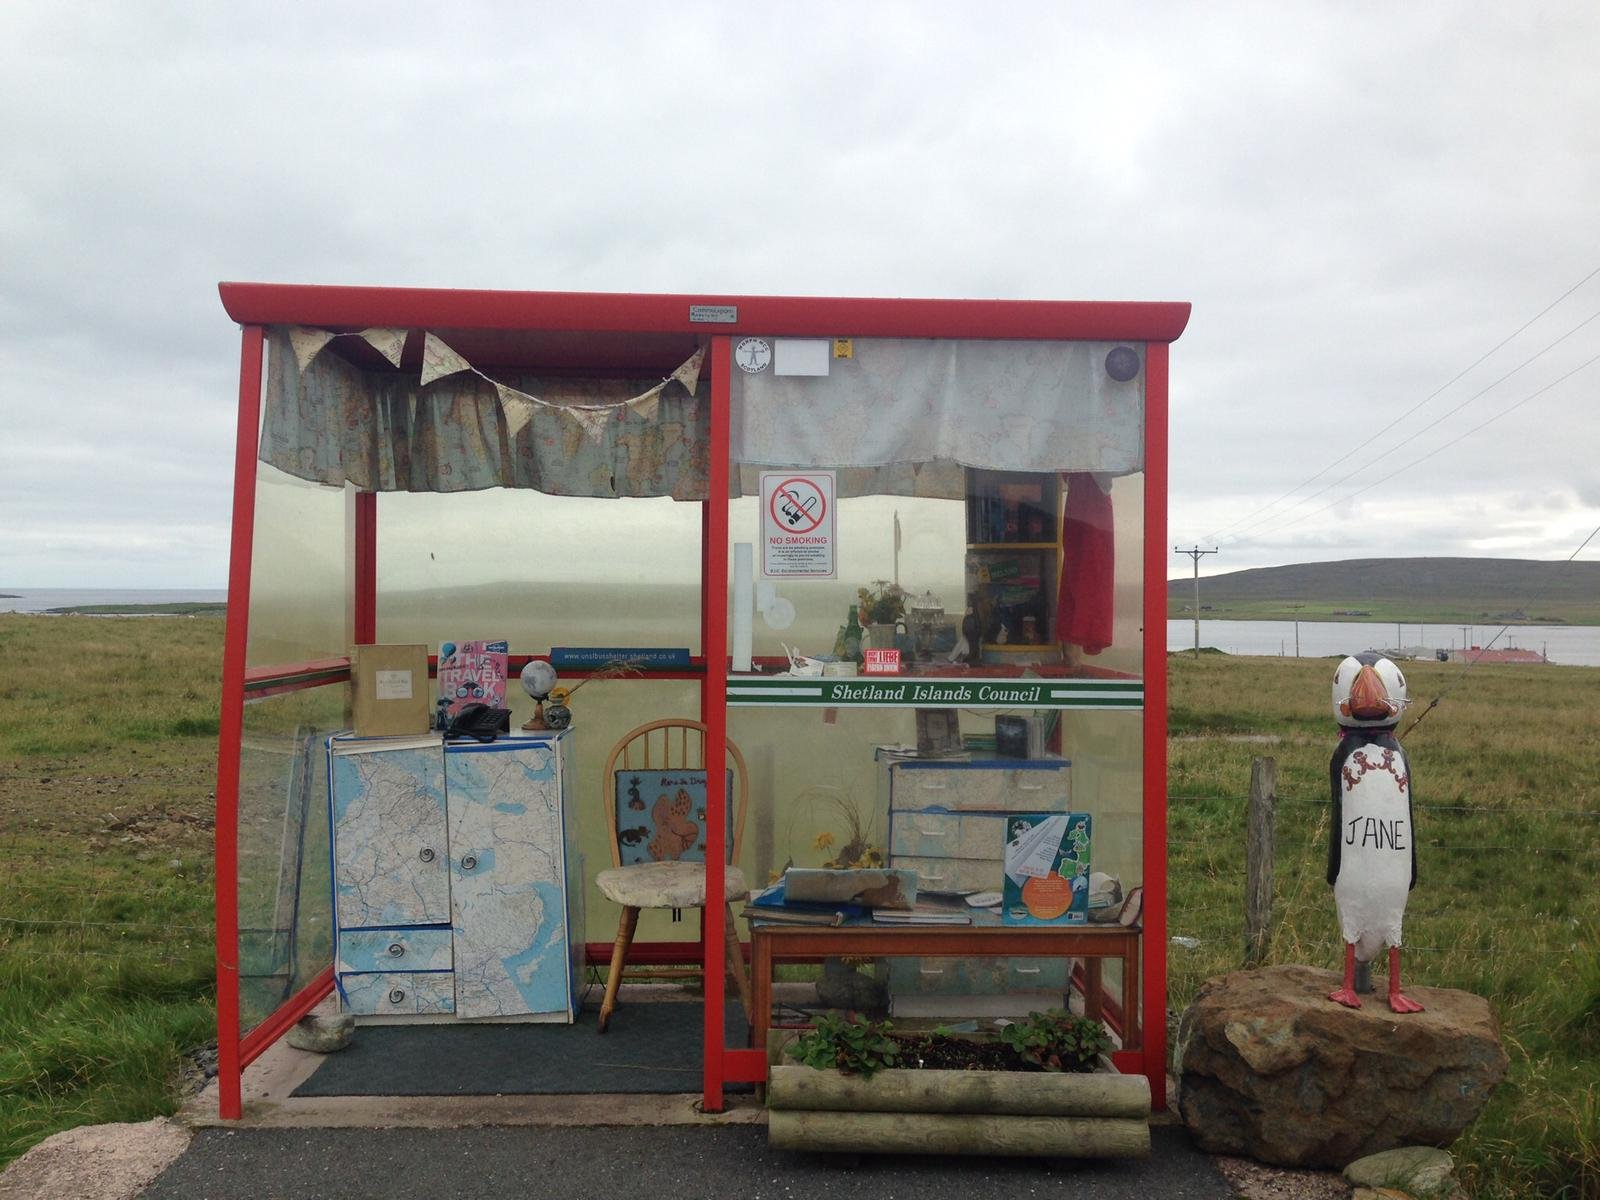 Highly decorated bus shelter with memorabilia from around the world